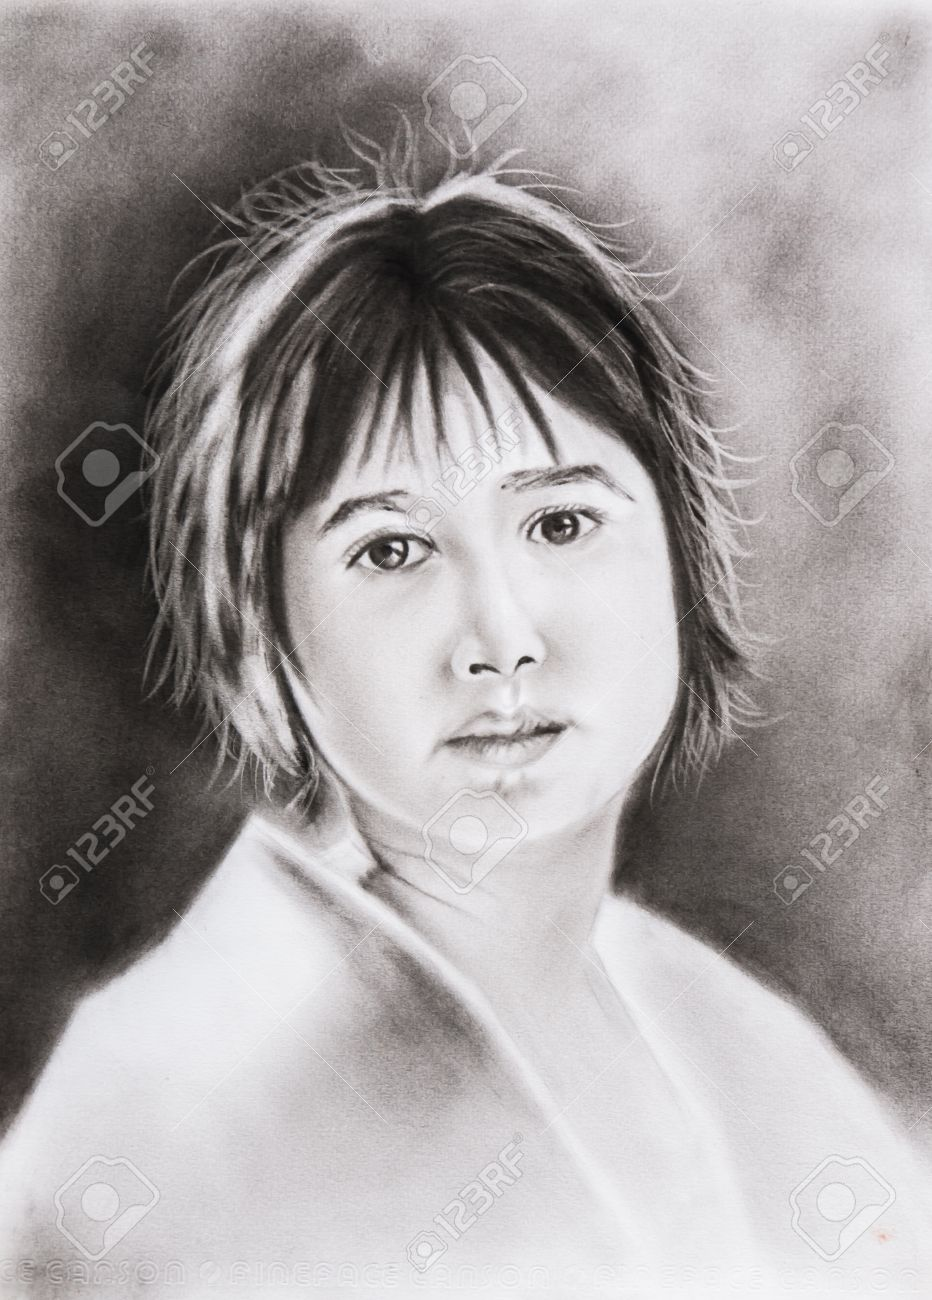 Beautiful girl watching attentively freehand pencil drawing not a real person stock photo 18352548